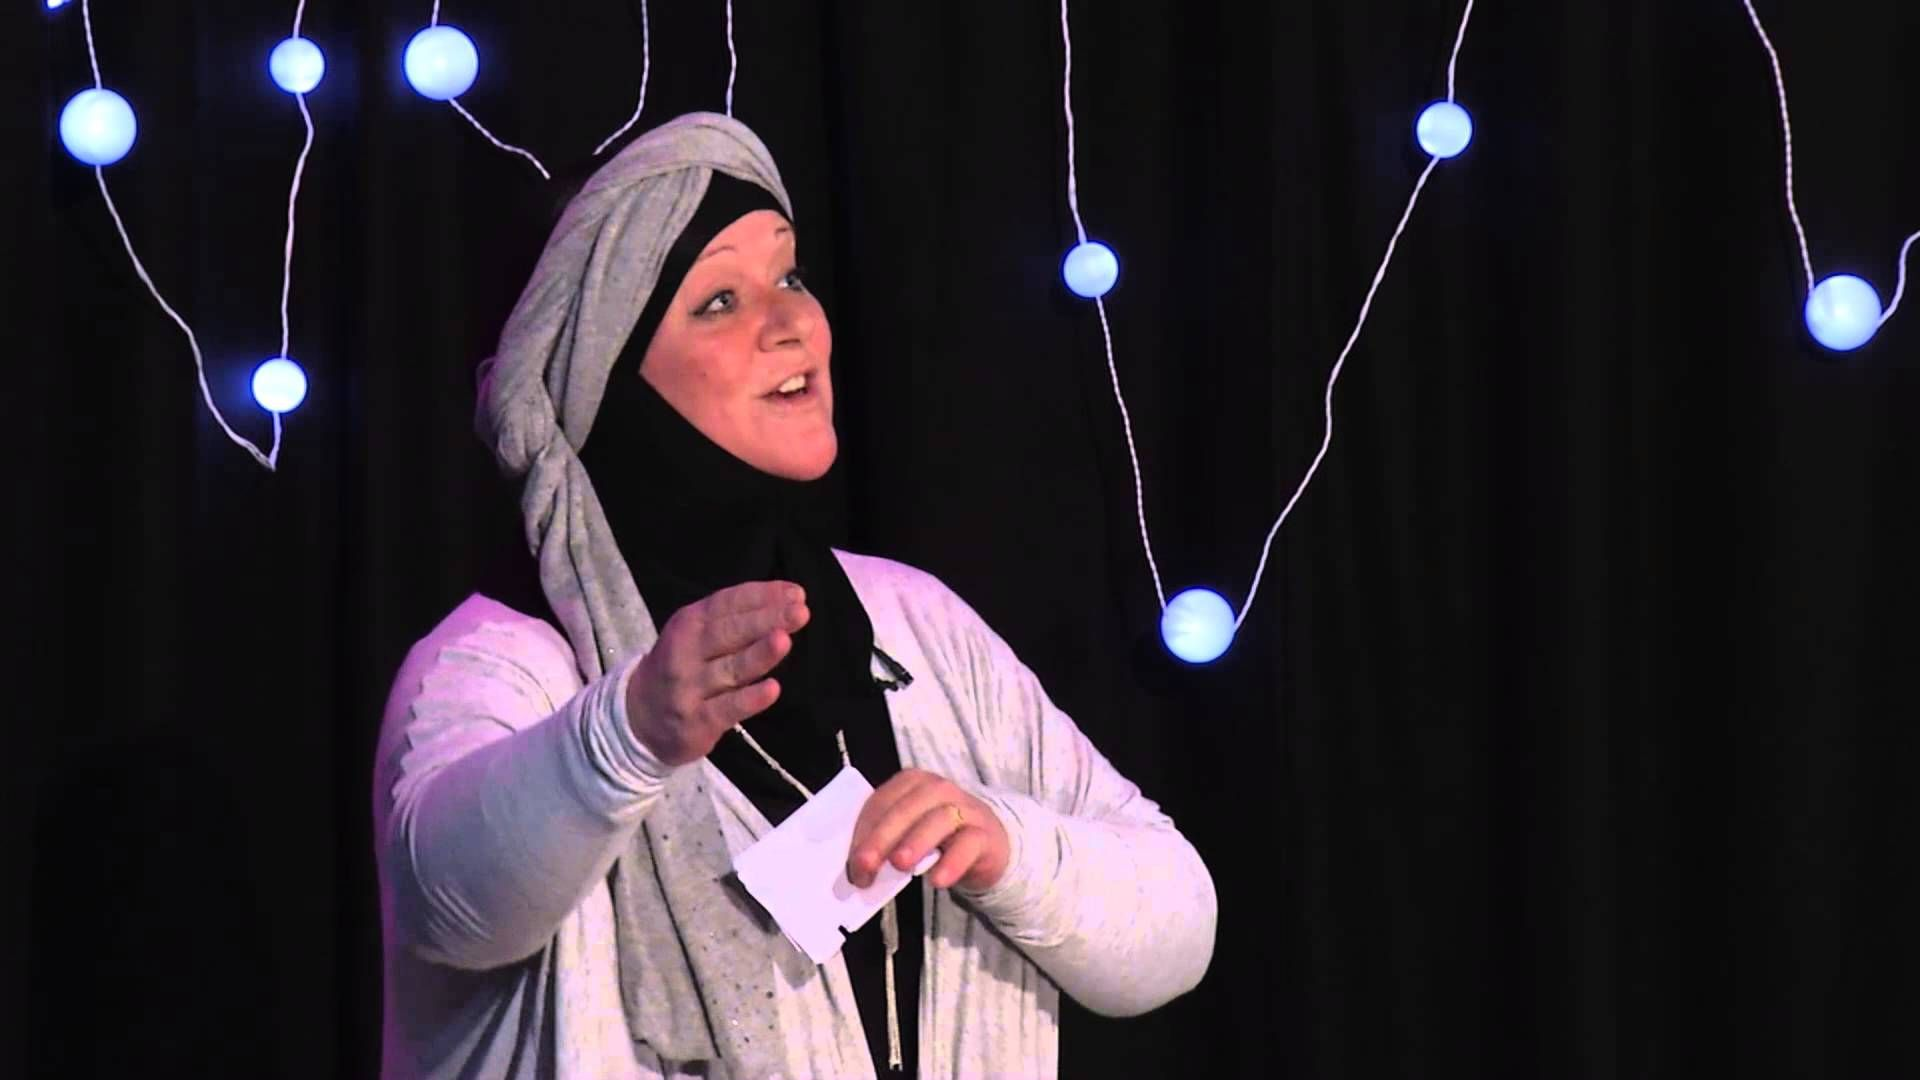 Why are 'Women's Issues' a Taboo Subject?: Iman Mujahed at TEDxUCLWomen